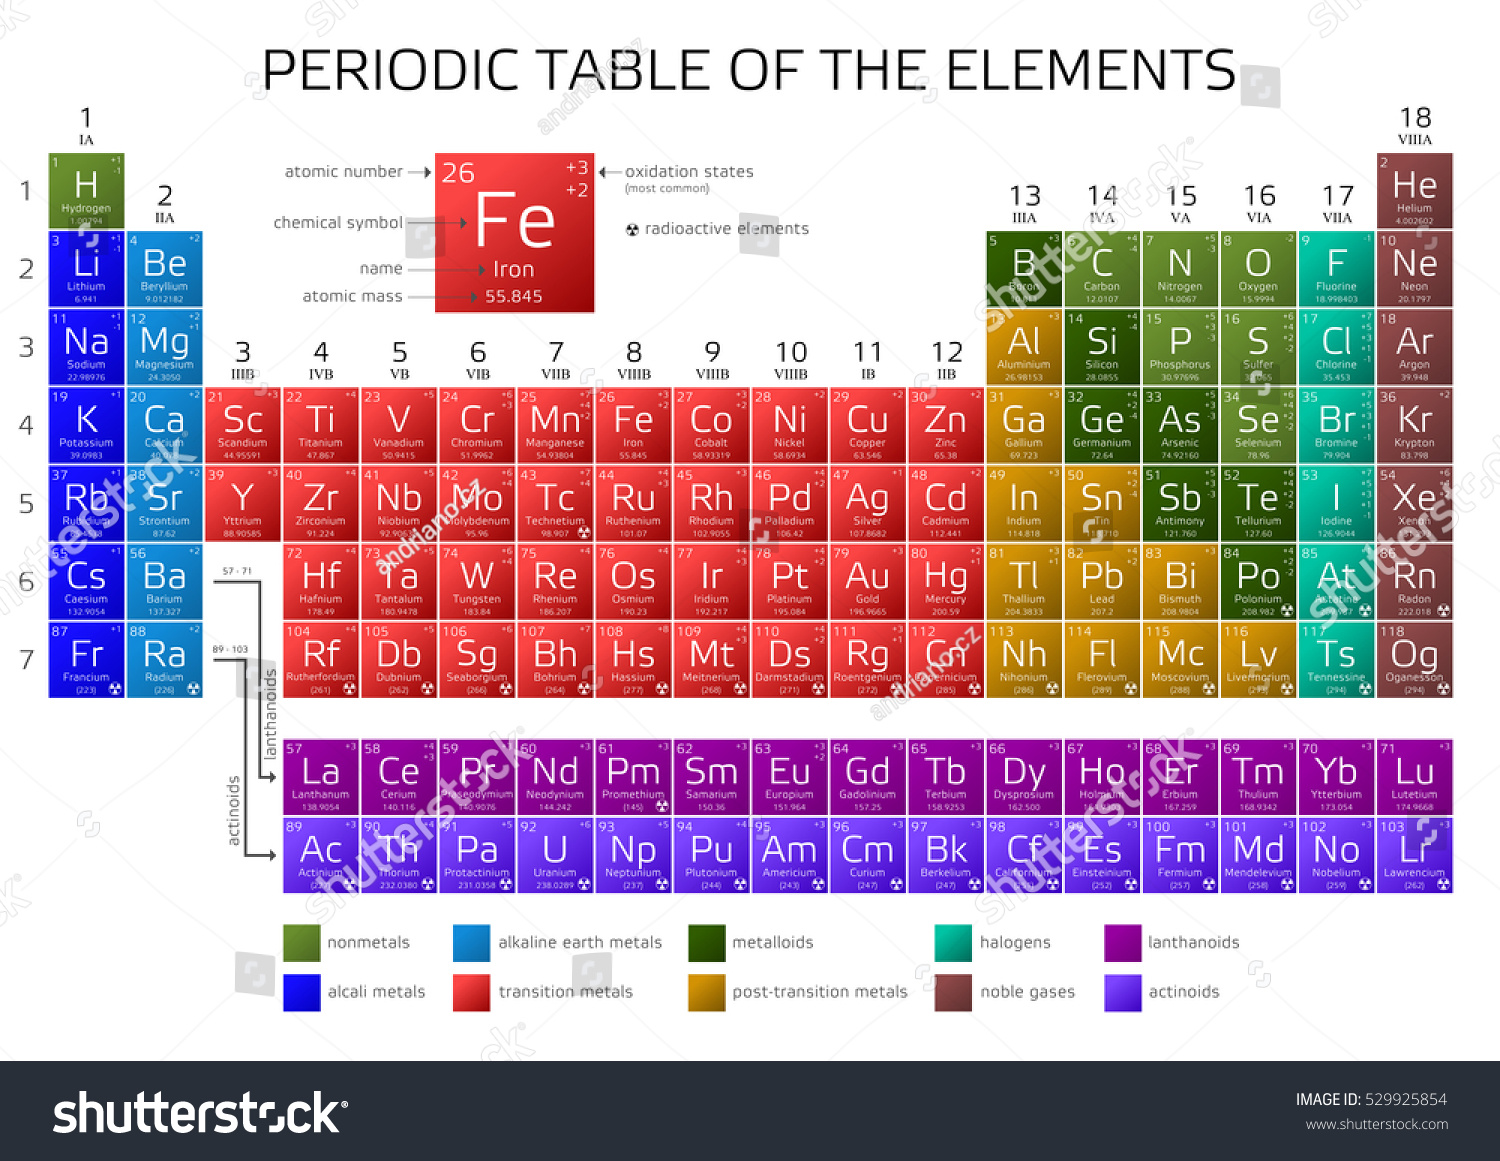 periodic table elements names - Periodic Table Diamond Symbol